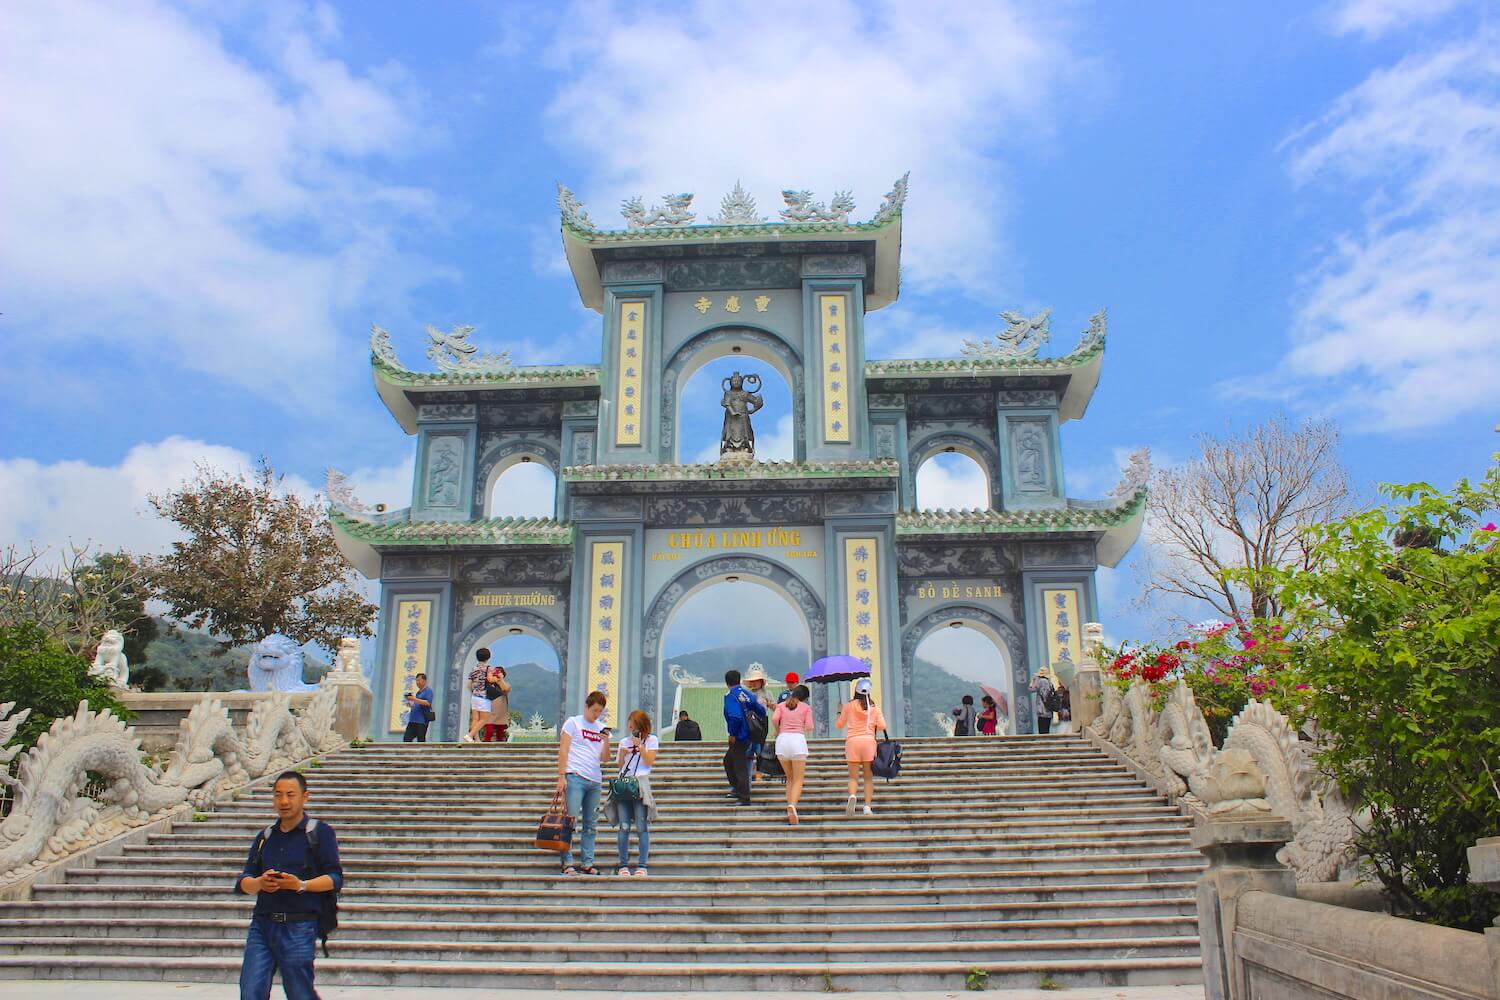 linh ung gate in da nang